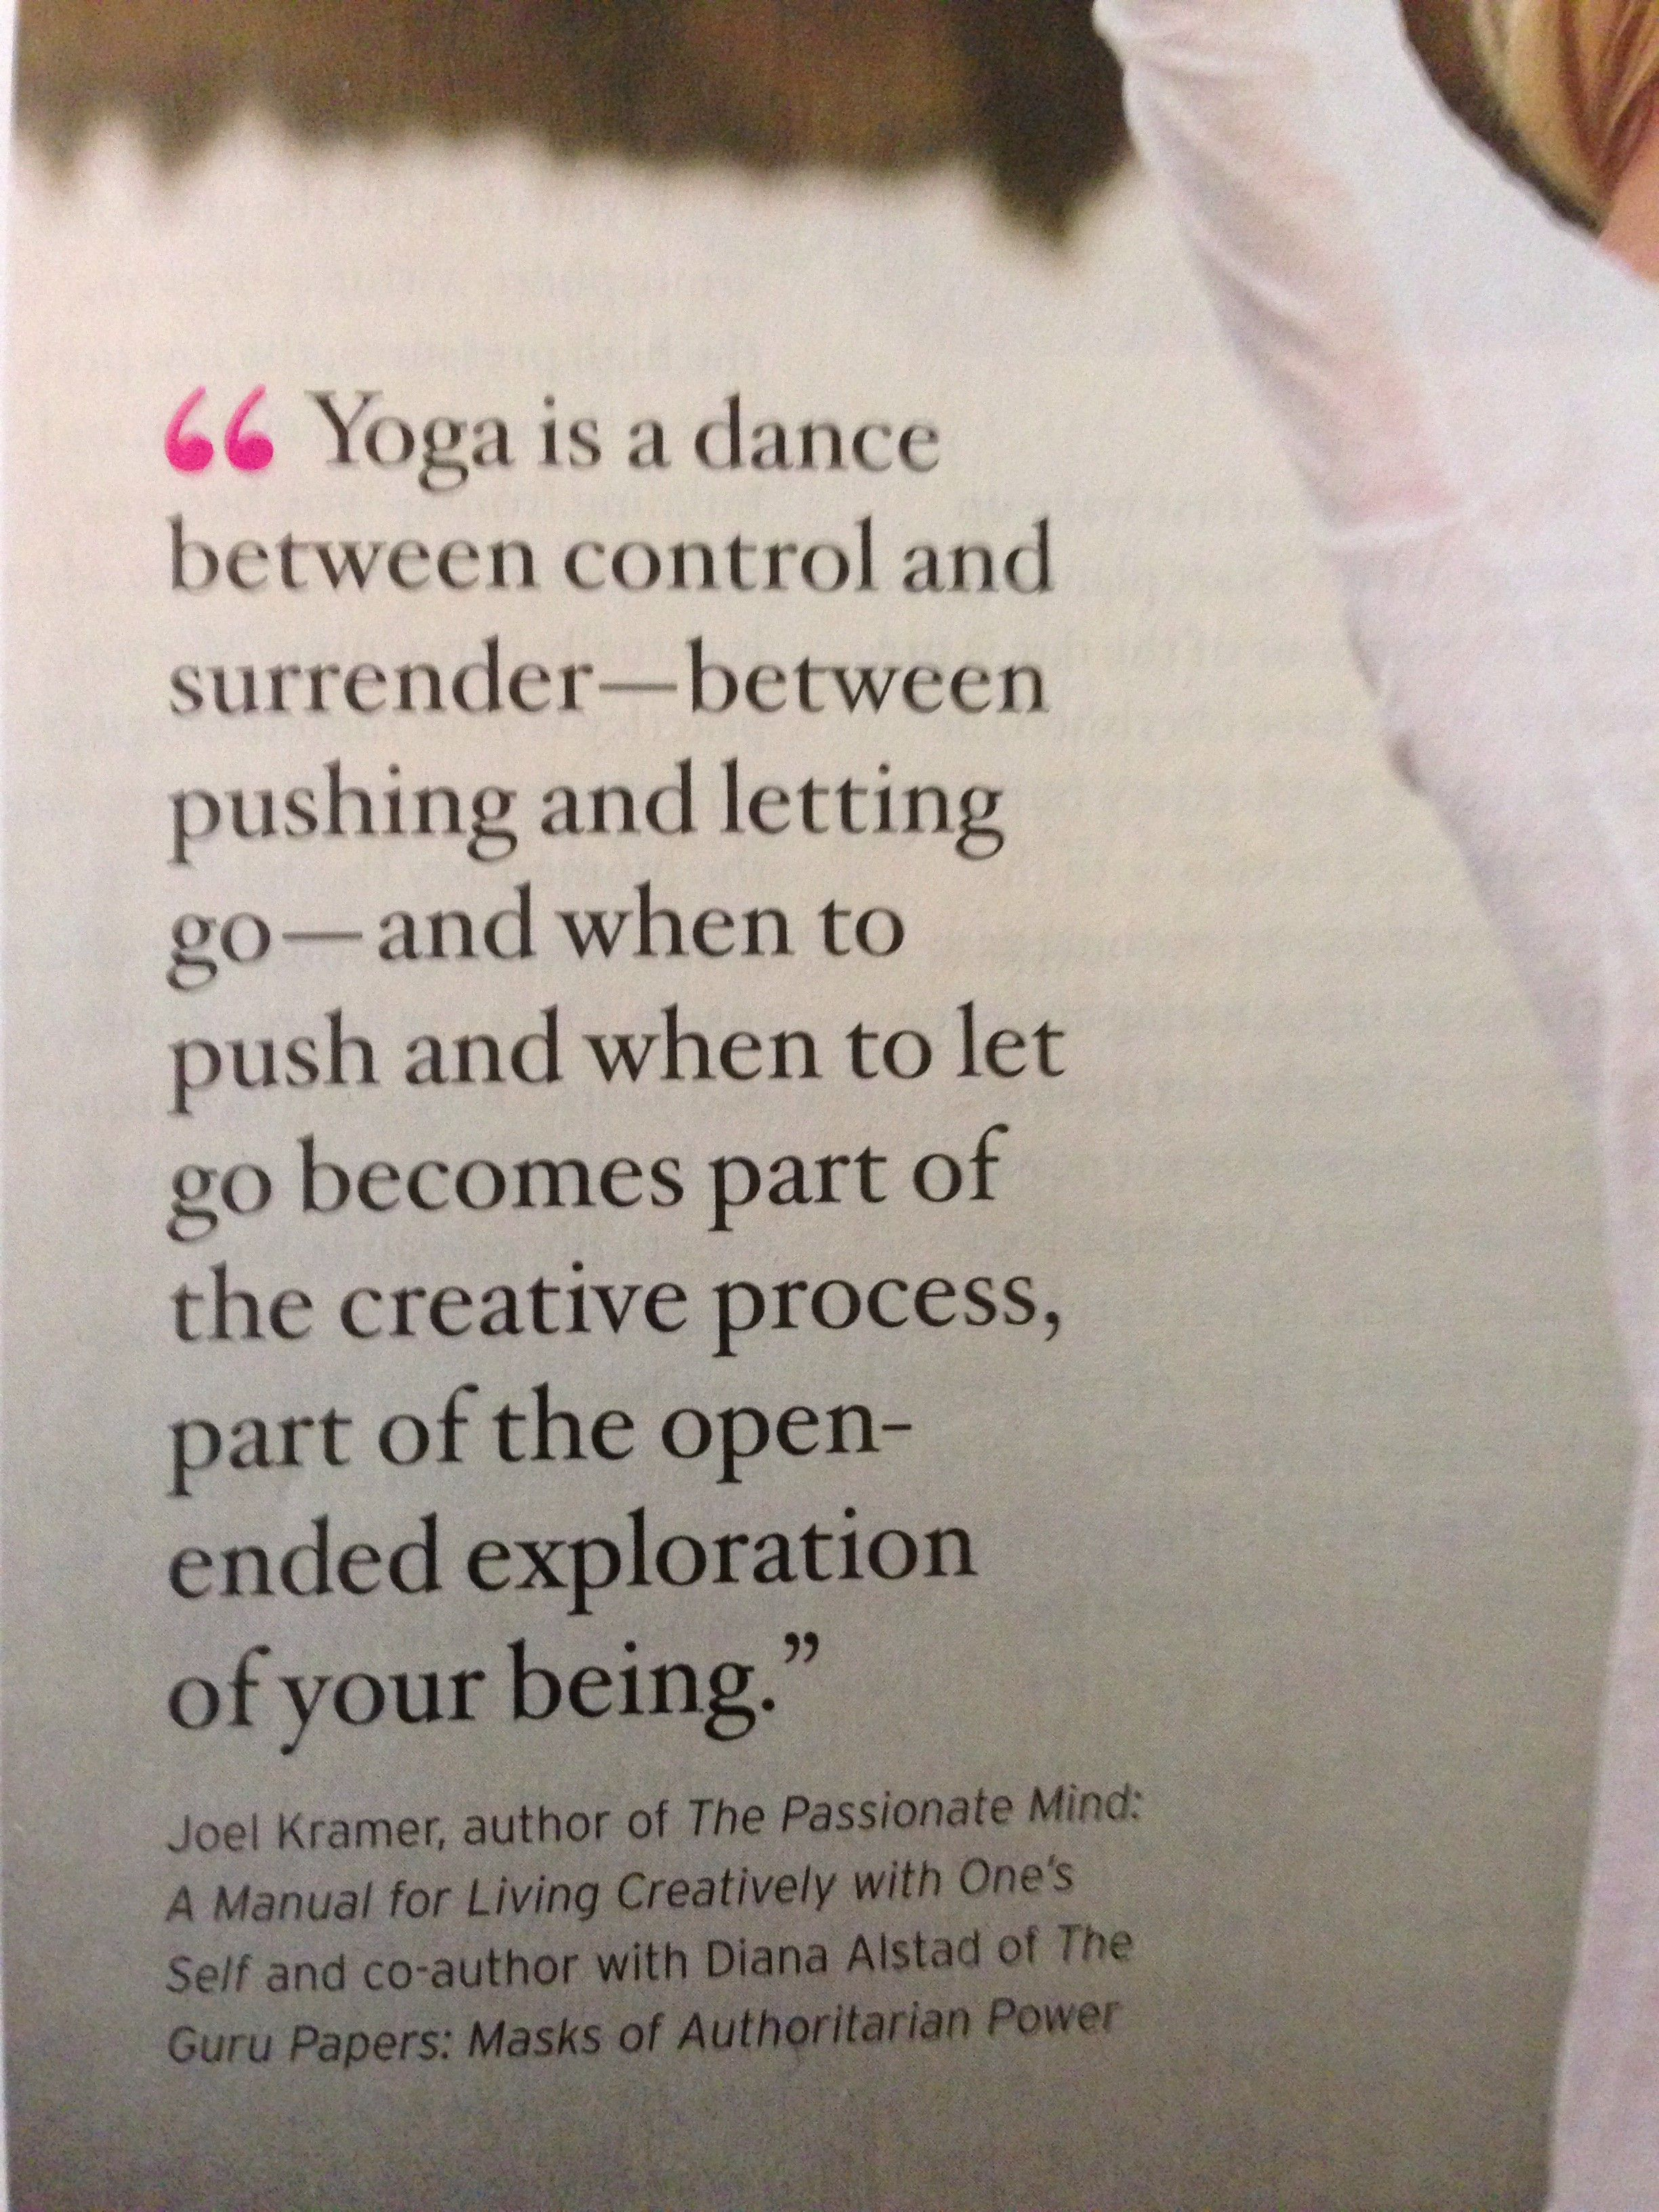 Quotes about Balance and yoga (33 quotes)